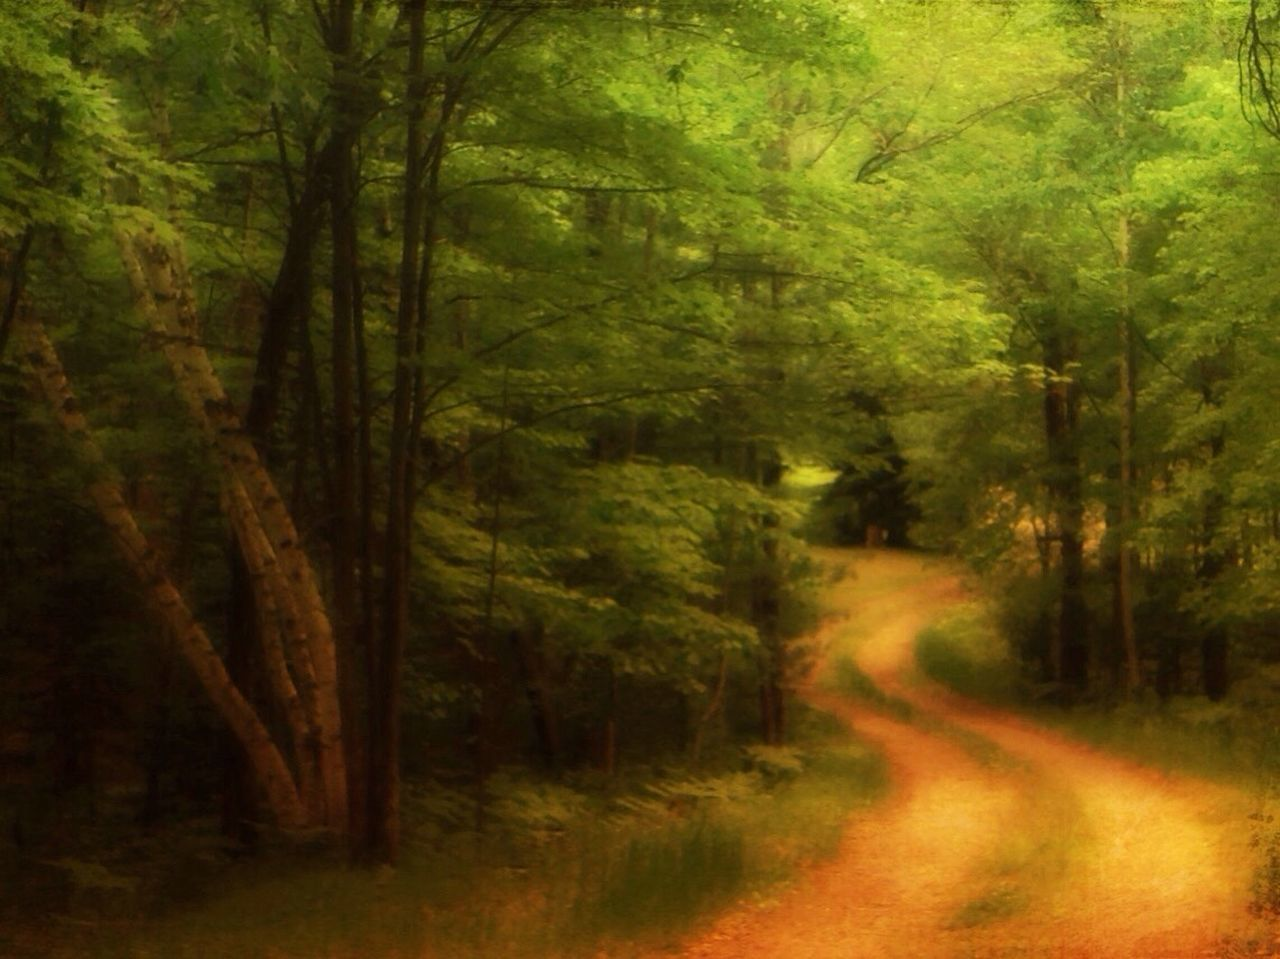 nature, forest, tree, landscape, no people, outdoors, road, grass, day, beauty in nature